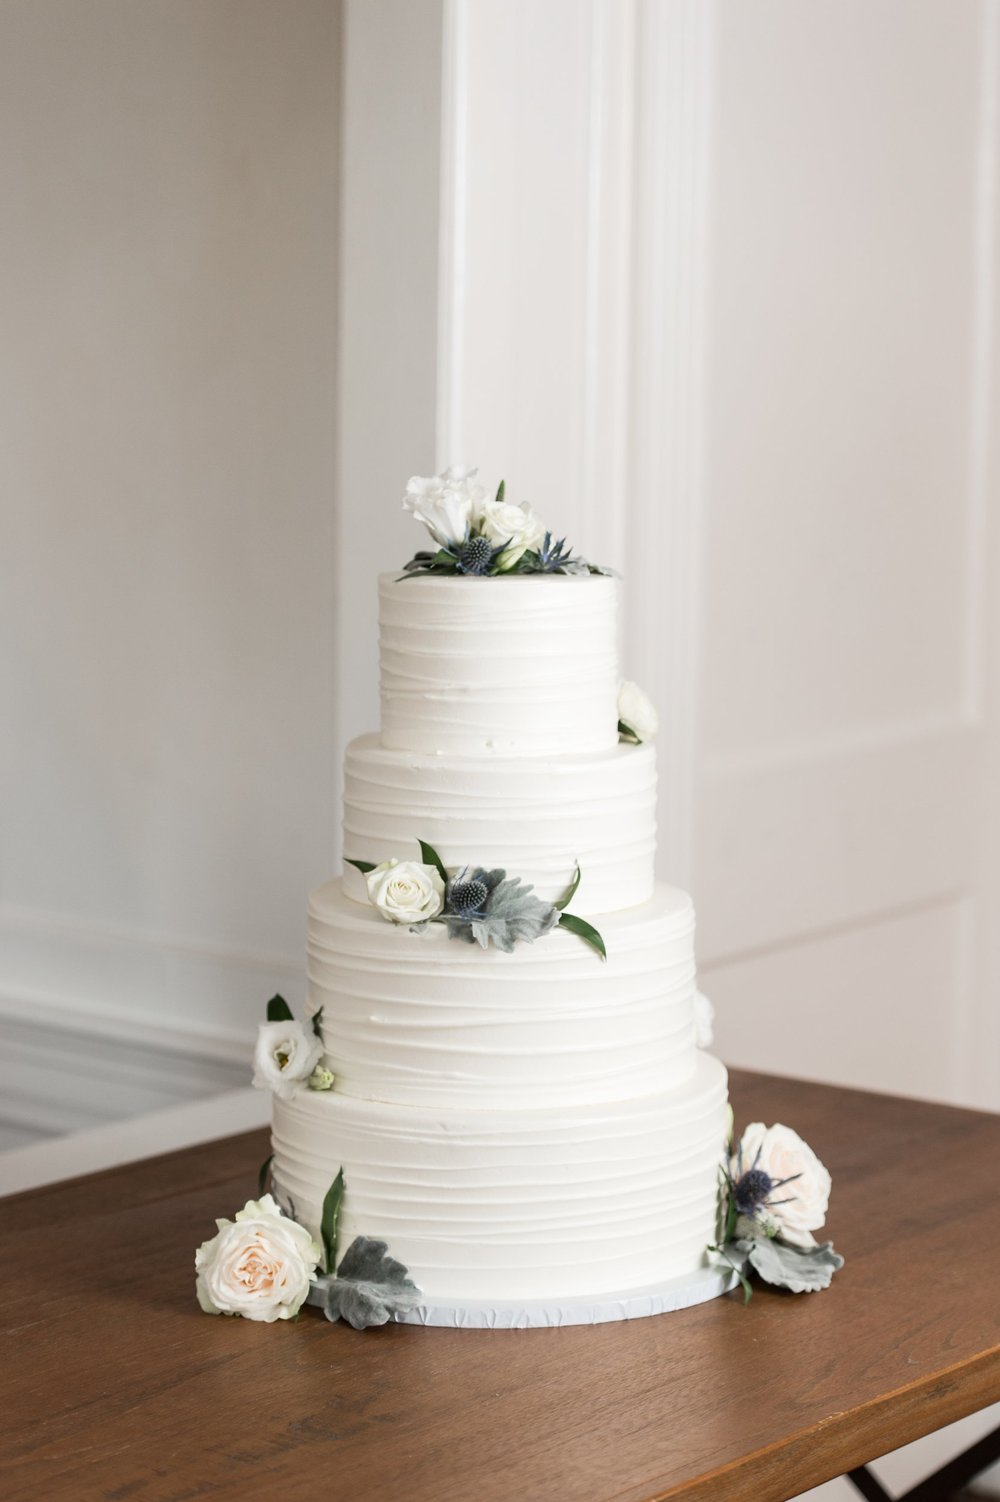 classic cape cod wedding cake with flowers by cottage street bakery at dennis inn wedding